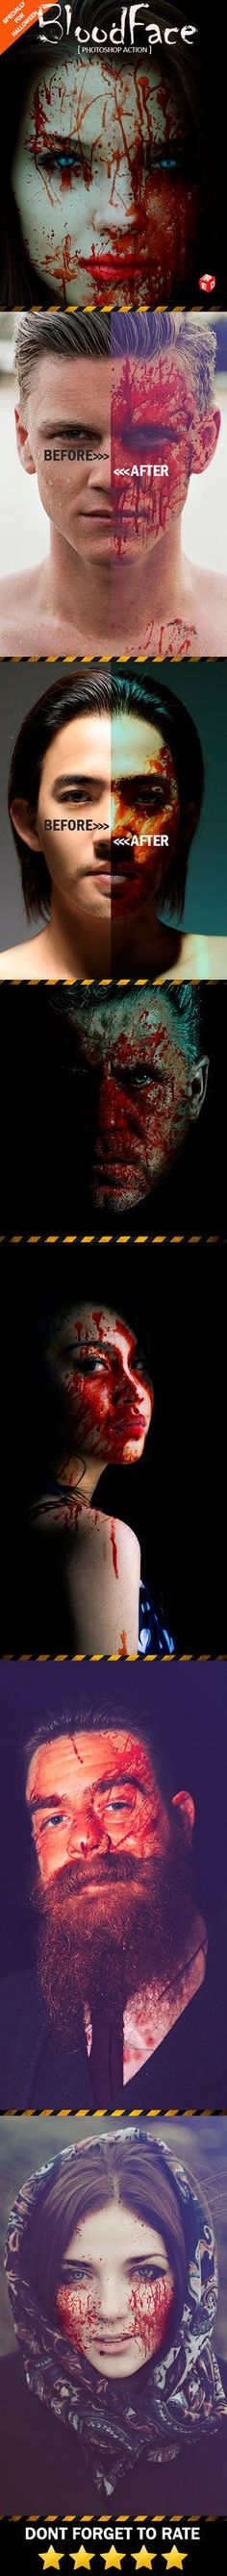 DOWNLOAD:goo.gl/MlrMXw BloodFace Photoshop ActionCreate a great effect on your blood drops image in just a few minutes. Action is designed to achieve blood aliasing at the portrait, and save your t...